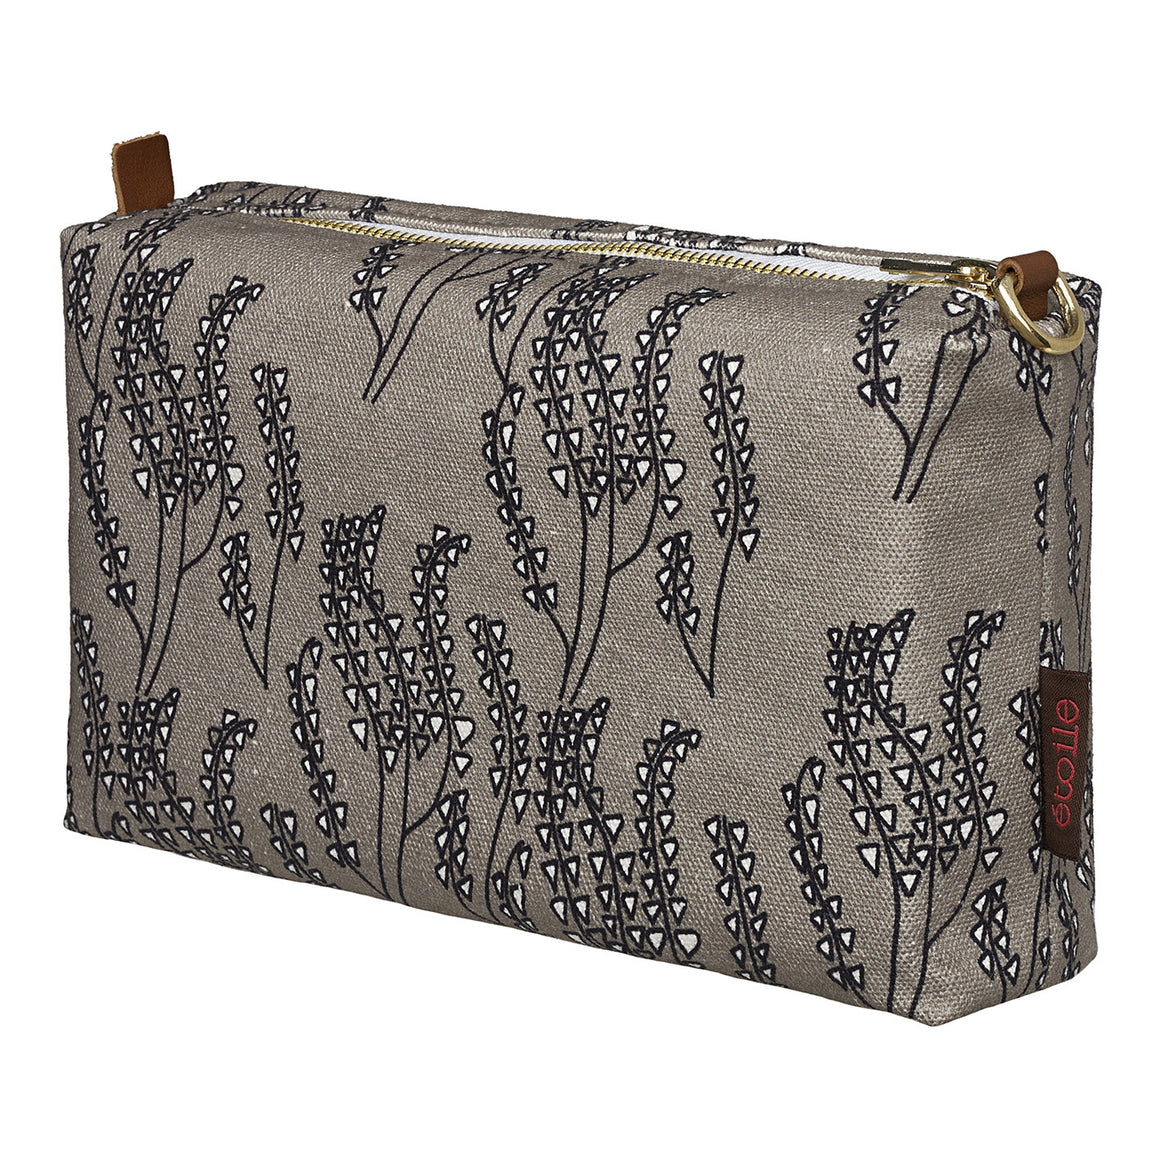 Maricopa Graphic Floral Pattern Canvas Toiletry Travel or Wash Bag in Dove Grey & Black Perfect for all your beauty and cosmetic needs while travelling Ships from Canada (USA)